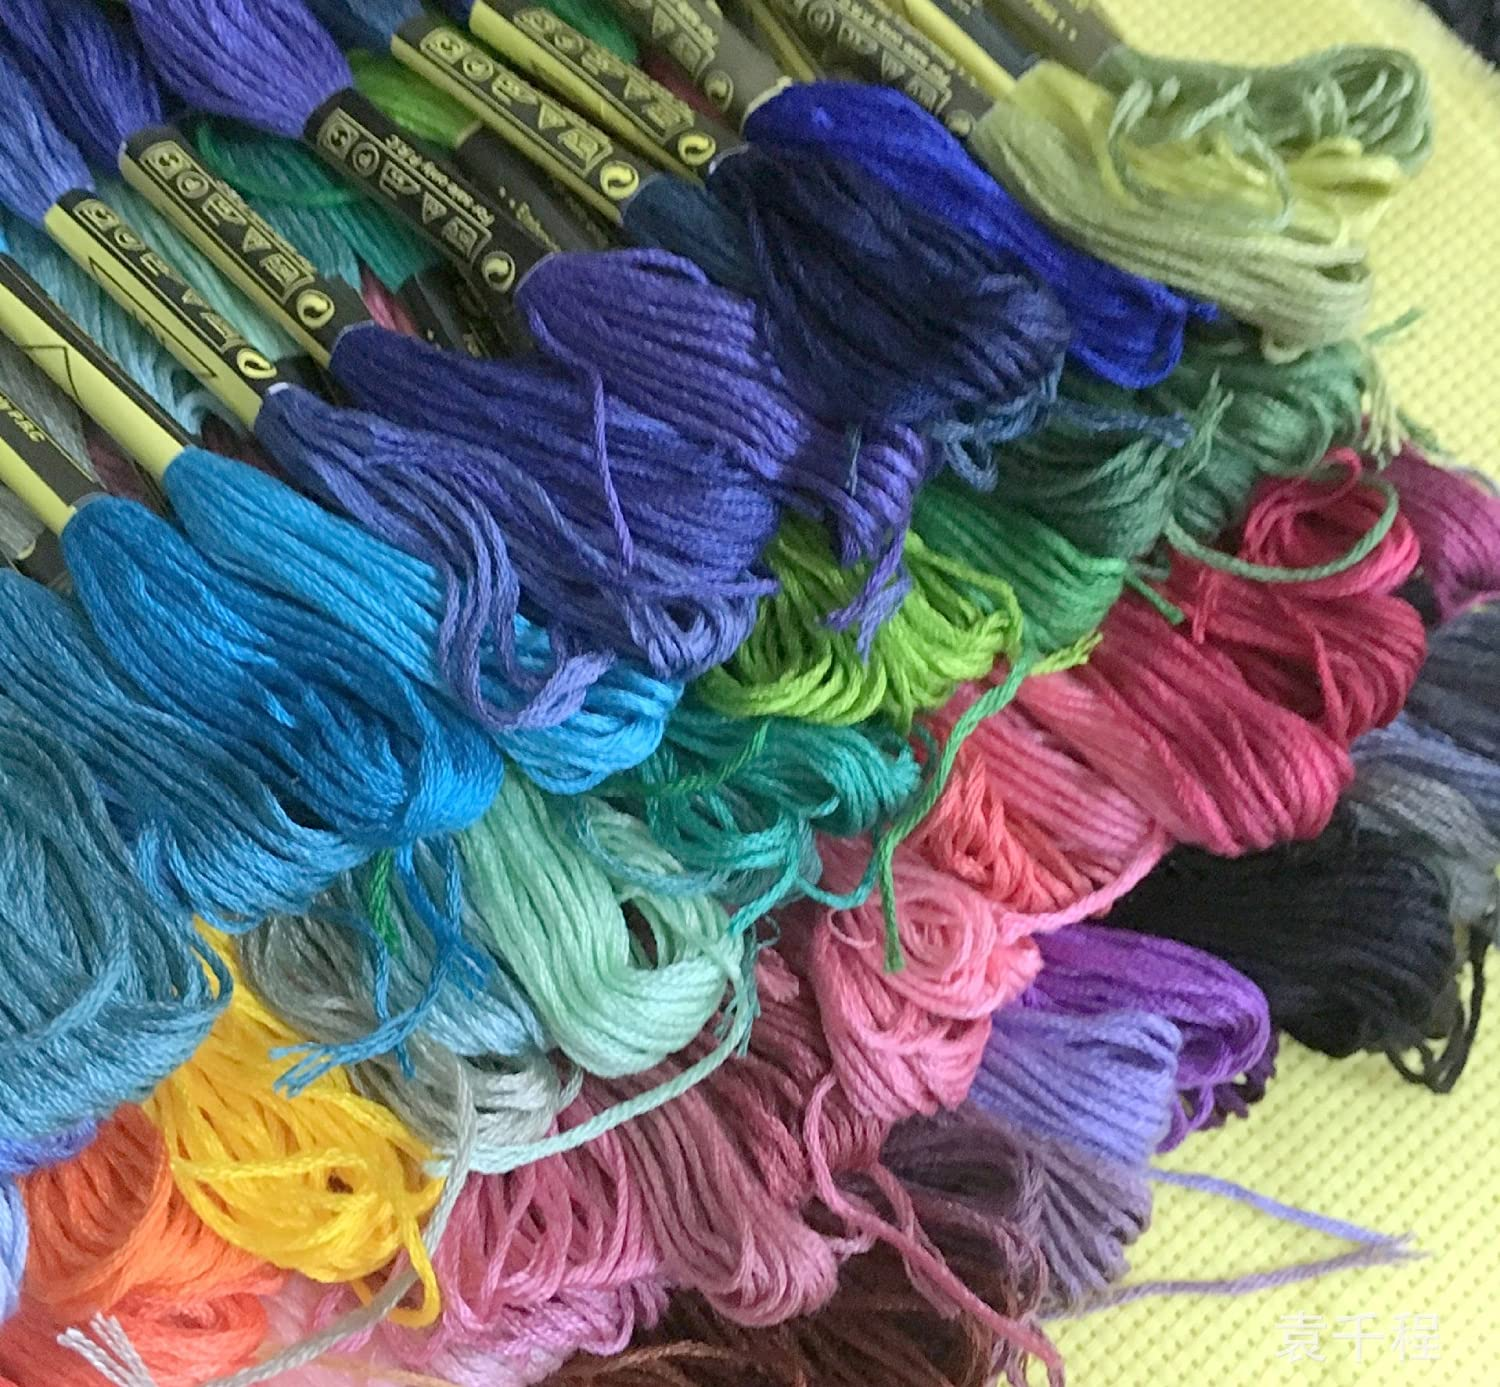 100 Colors Hand Embroidery Floss Cross Stitch Threads skeins Full range of Colors Friendship Bracelets Floss Crafts Floss from ThreadNanny